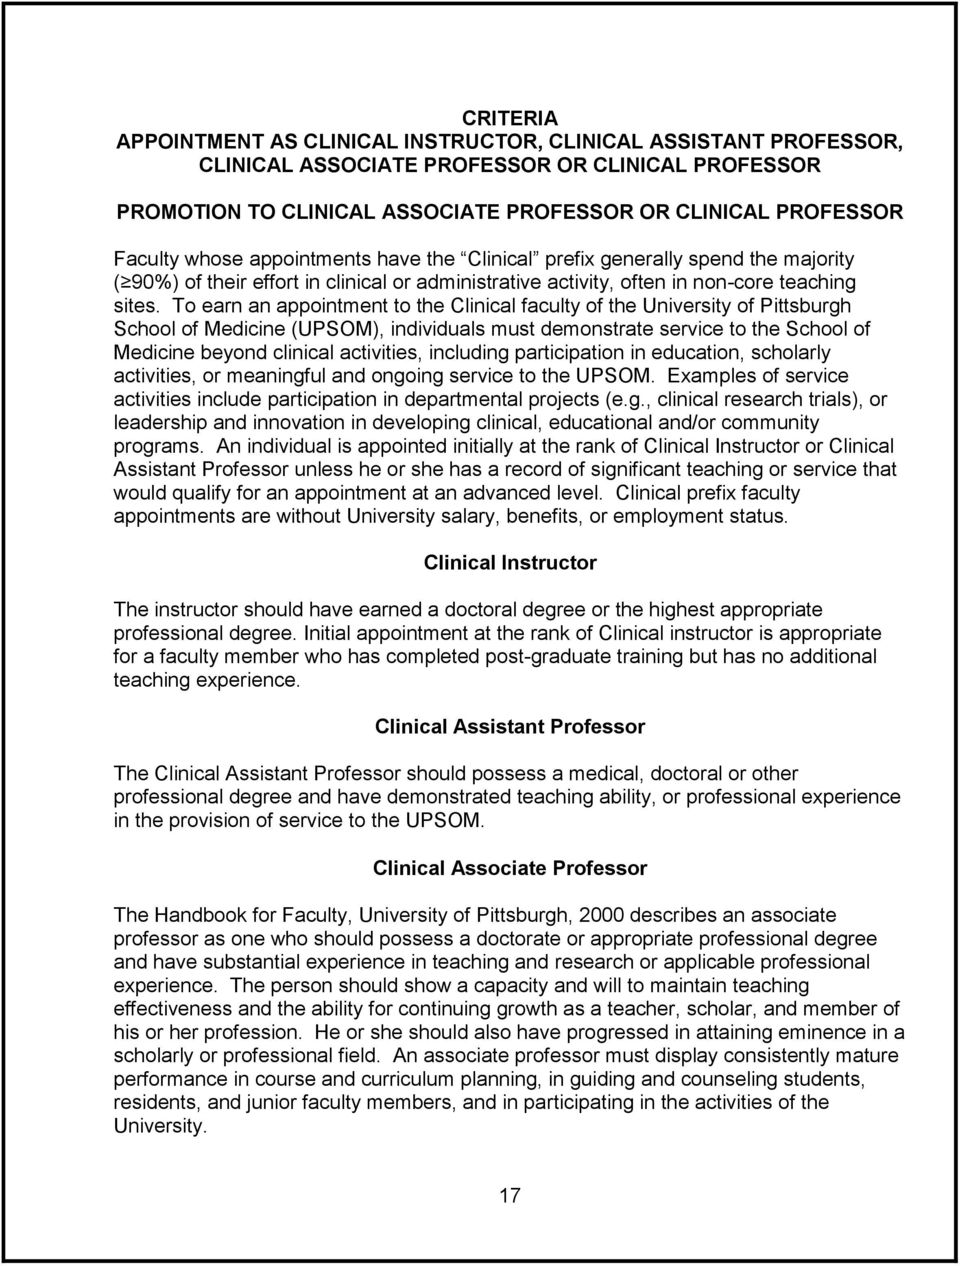 To earn an appointment to the Clinical faculty of the University of Pittsburgh School of Medicine (UPSOM), individuals must demonstrate service to the School of Medicine beyond clinical activities,